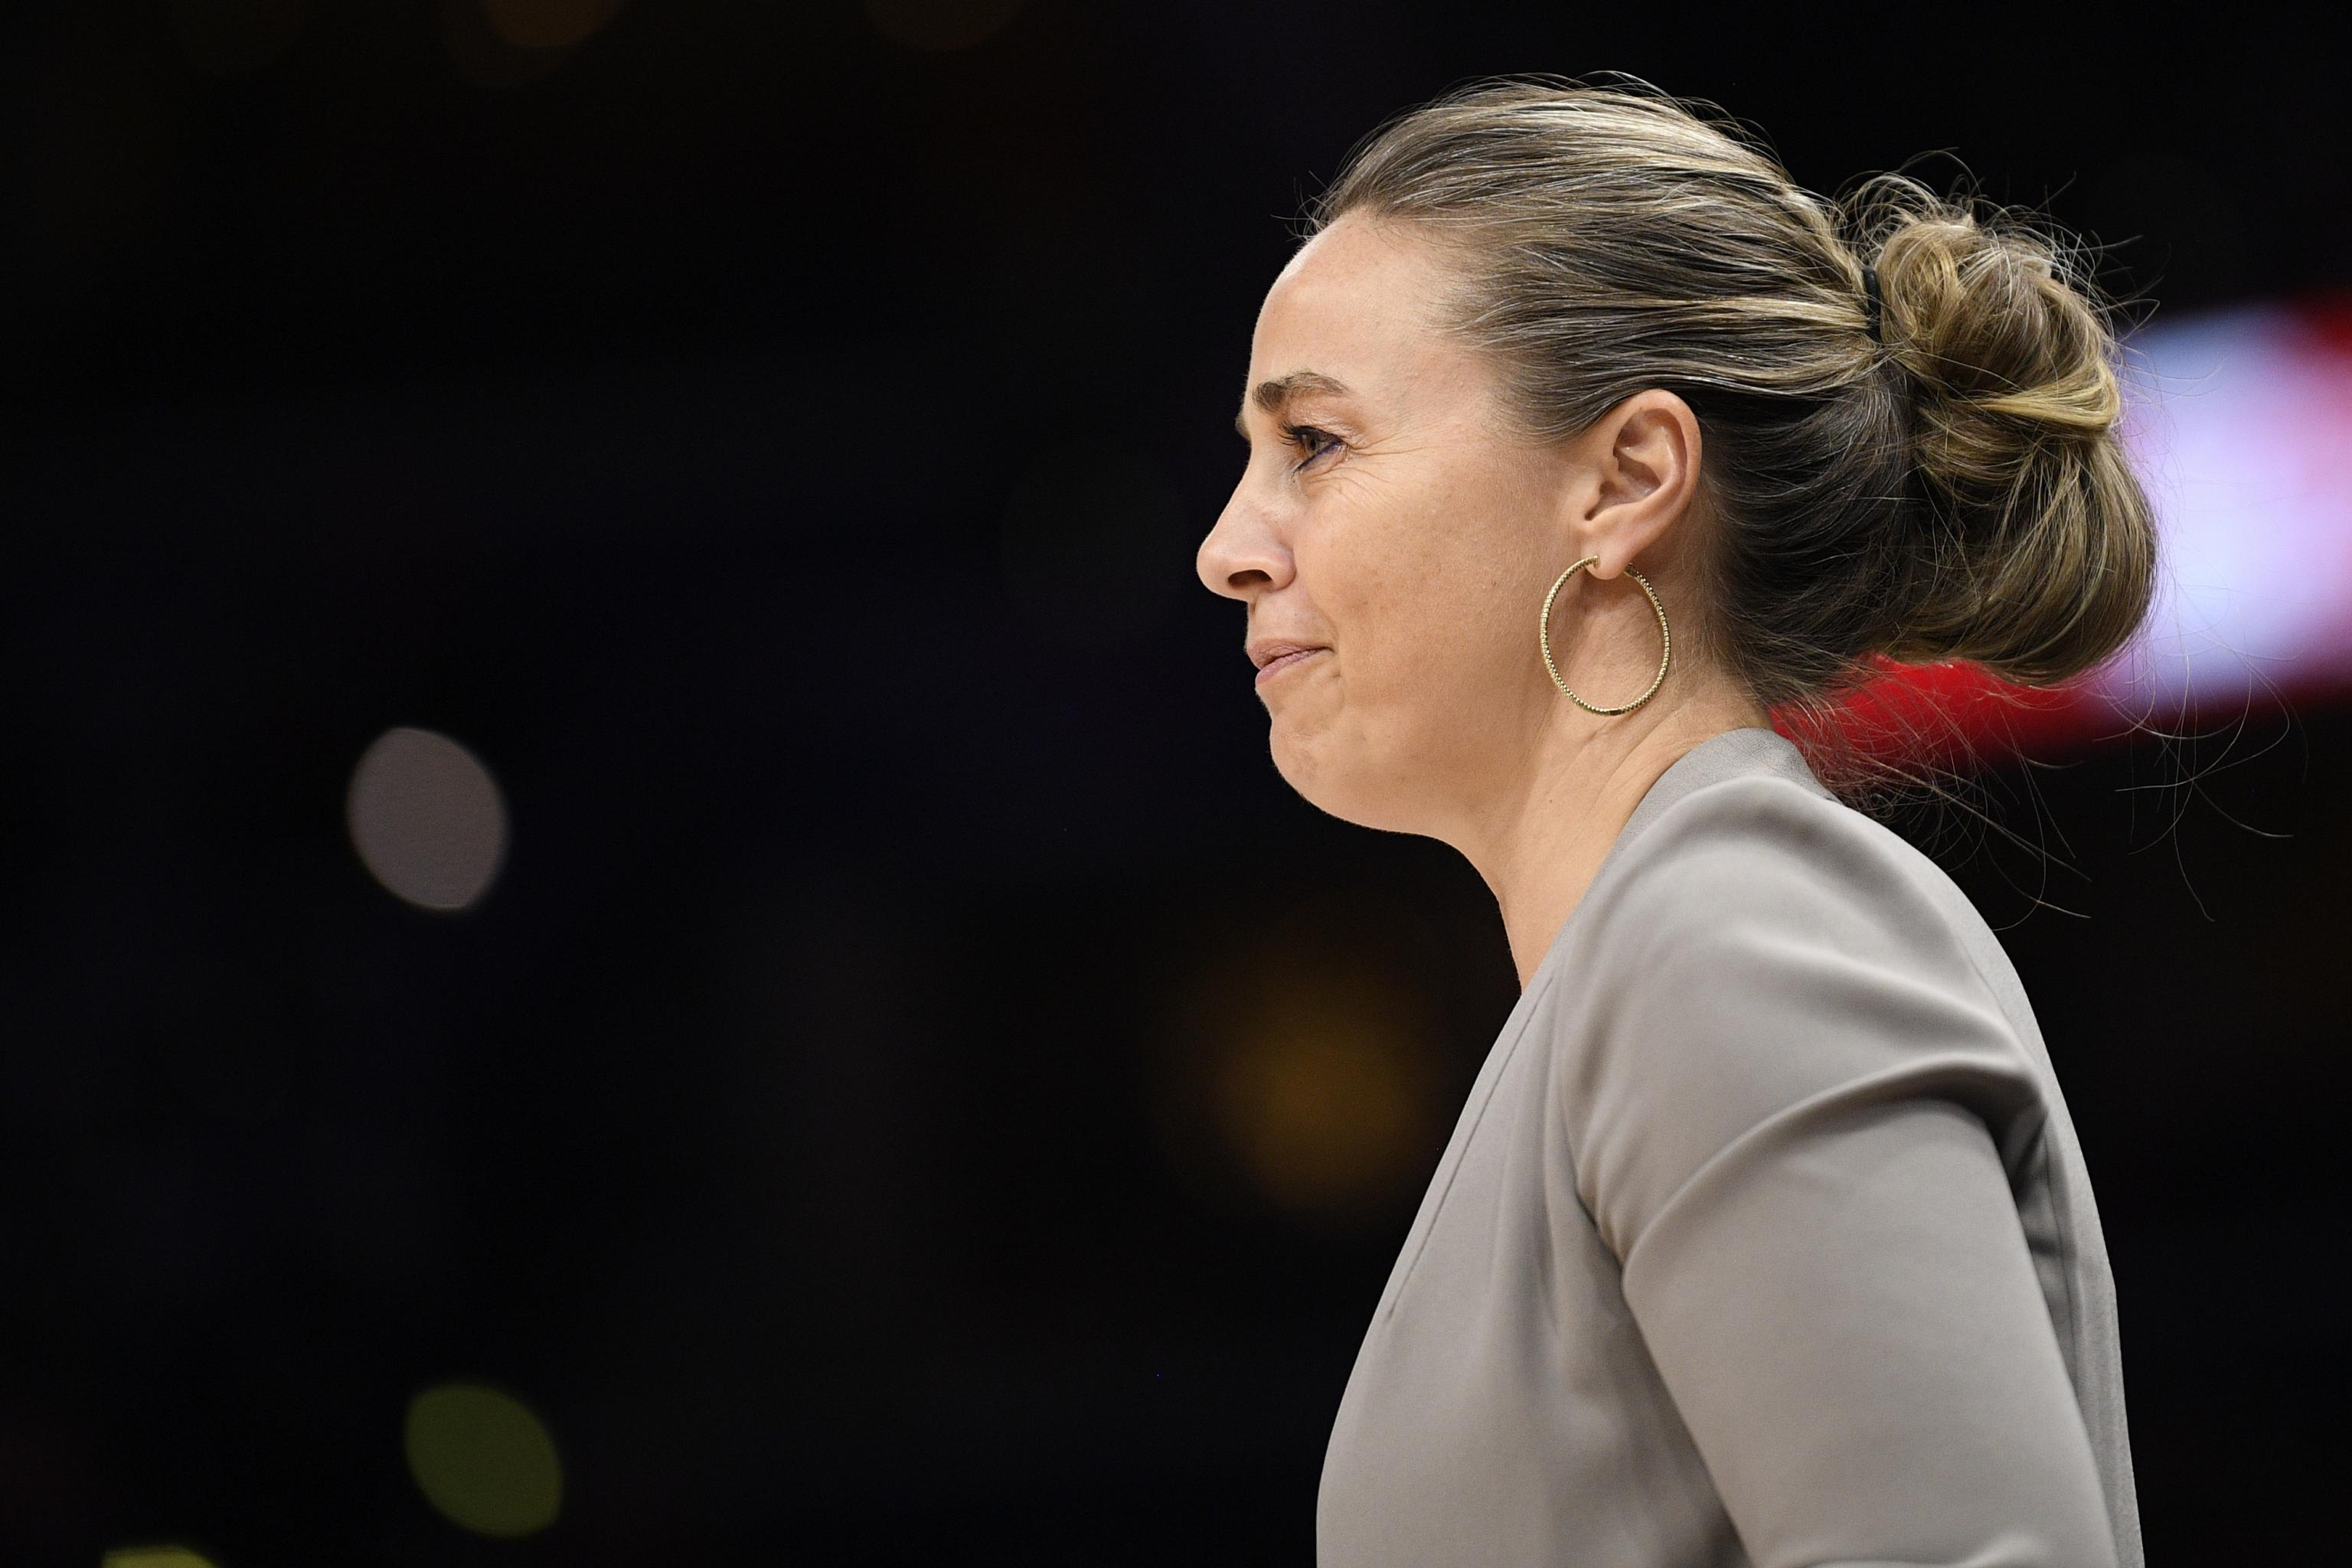 Knicks Rumors: Spurs' Becky Hammon Interested in Head Coaching Position